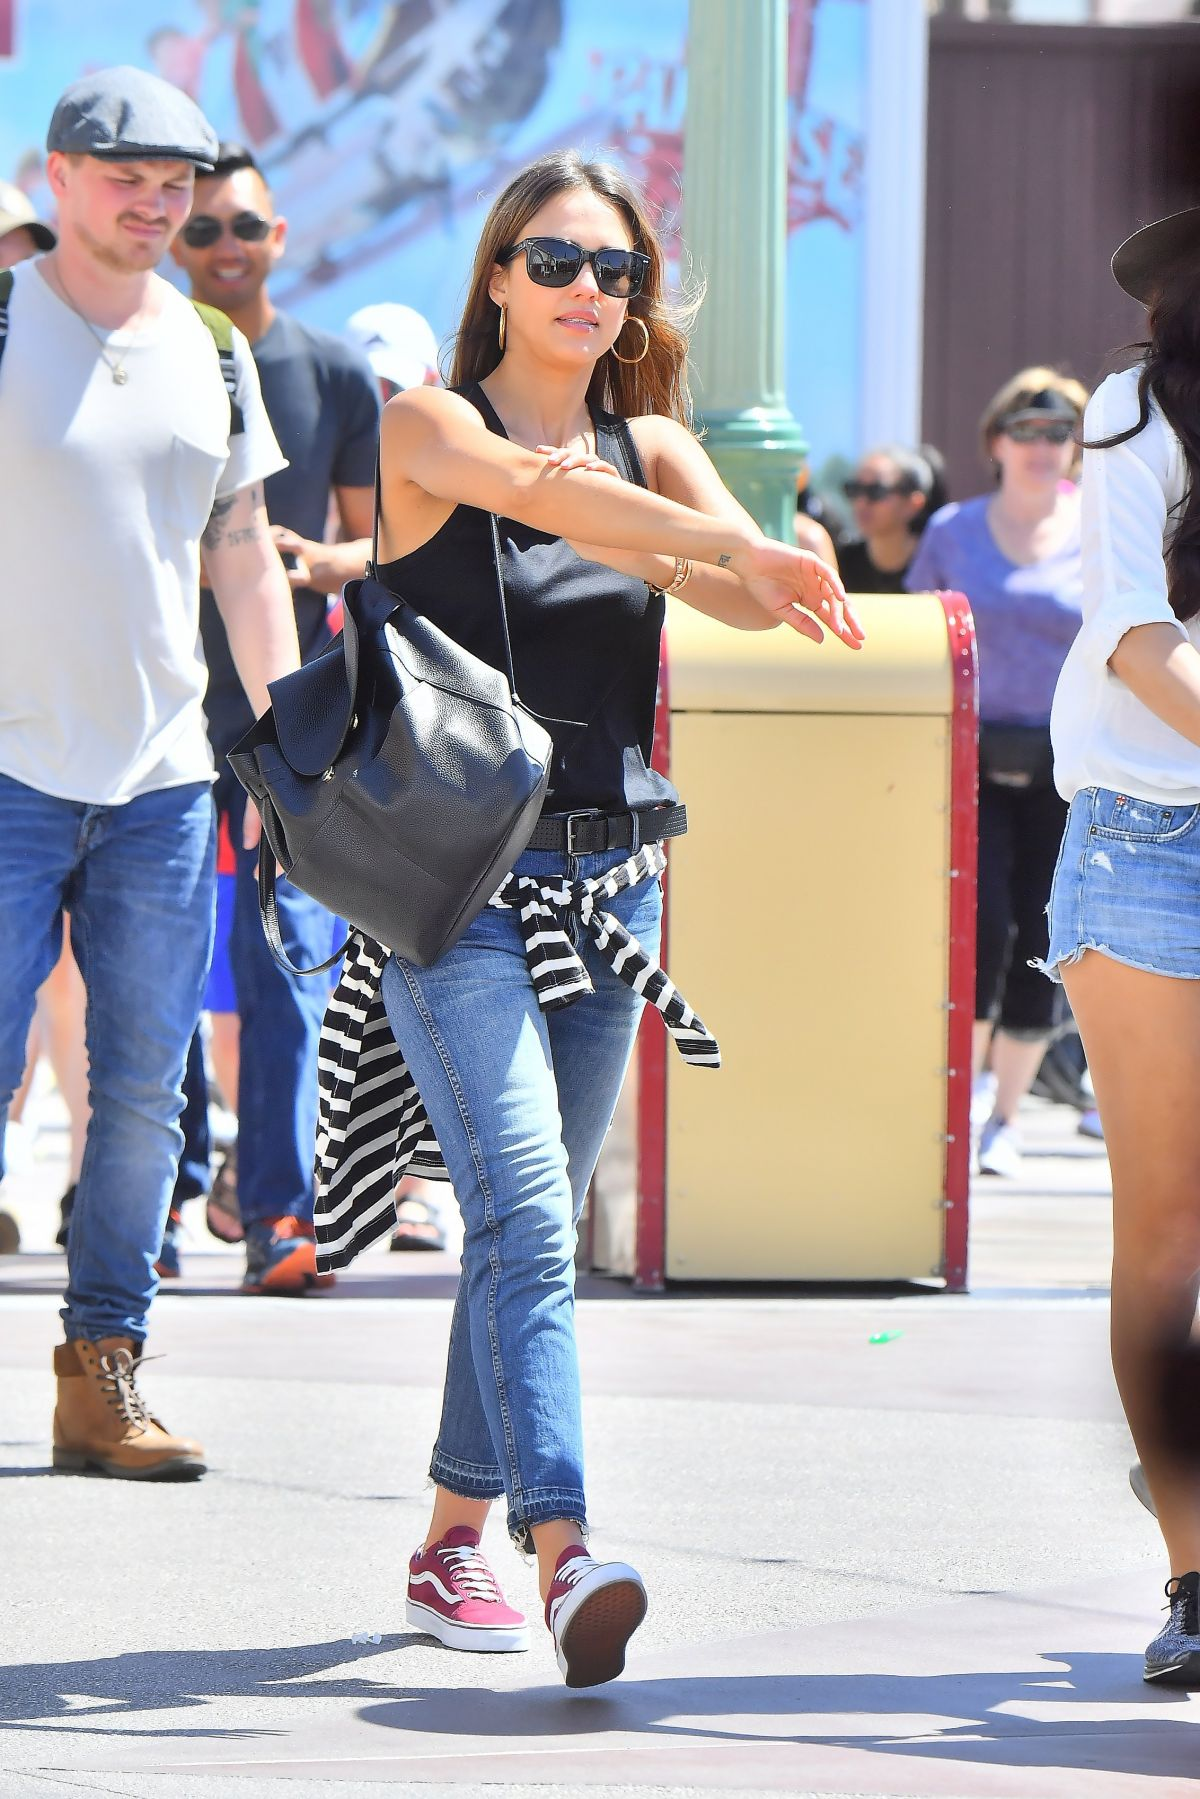 http://www.hawtcelebs.com/wp-content/uploads/2017/04/jessica-alba-out-at-disneyland-in-anaheim-03-30-2017_4.jpg